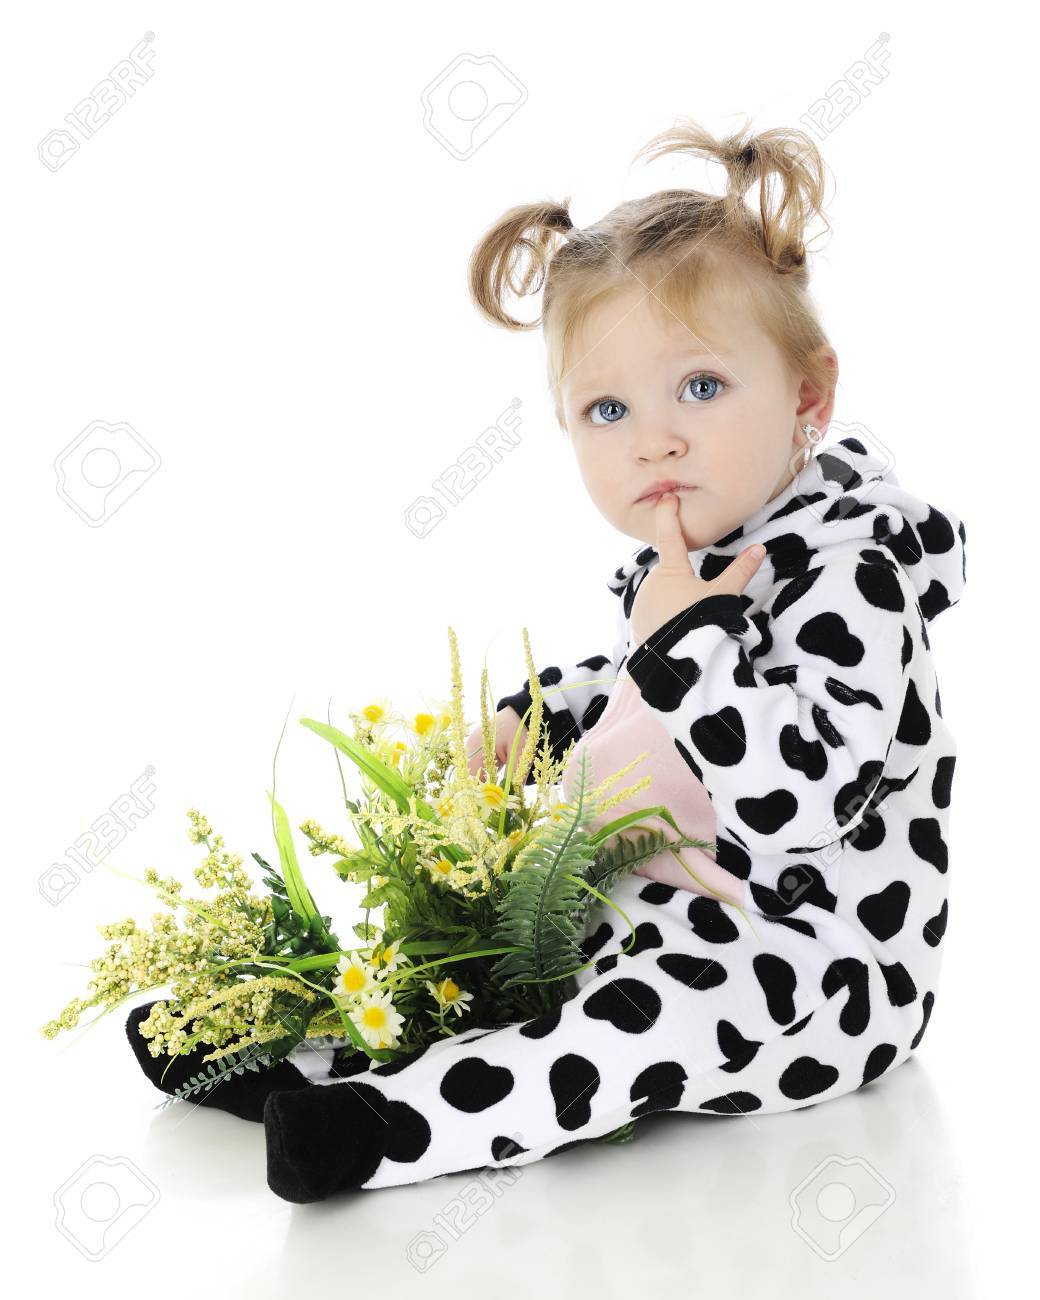 An adorable baby girl with a lap full of wild flowers thinking in her cow  sc 1 st  123RF.com & An Adorable Baby Girl With A Lap Full Of Wild Flowers Thinking ...